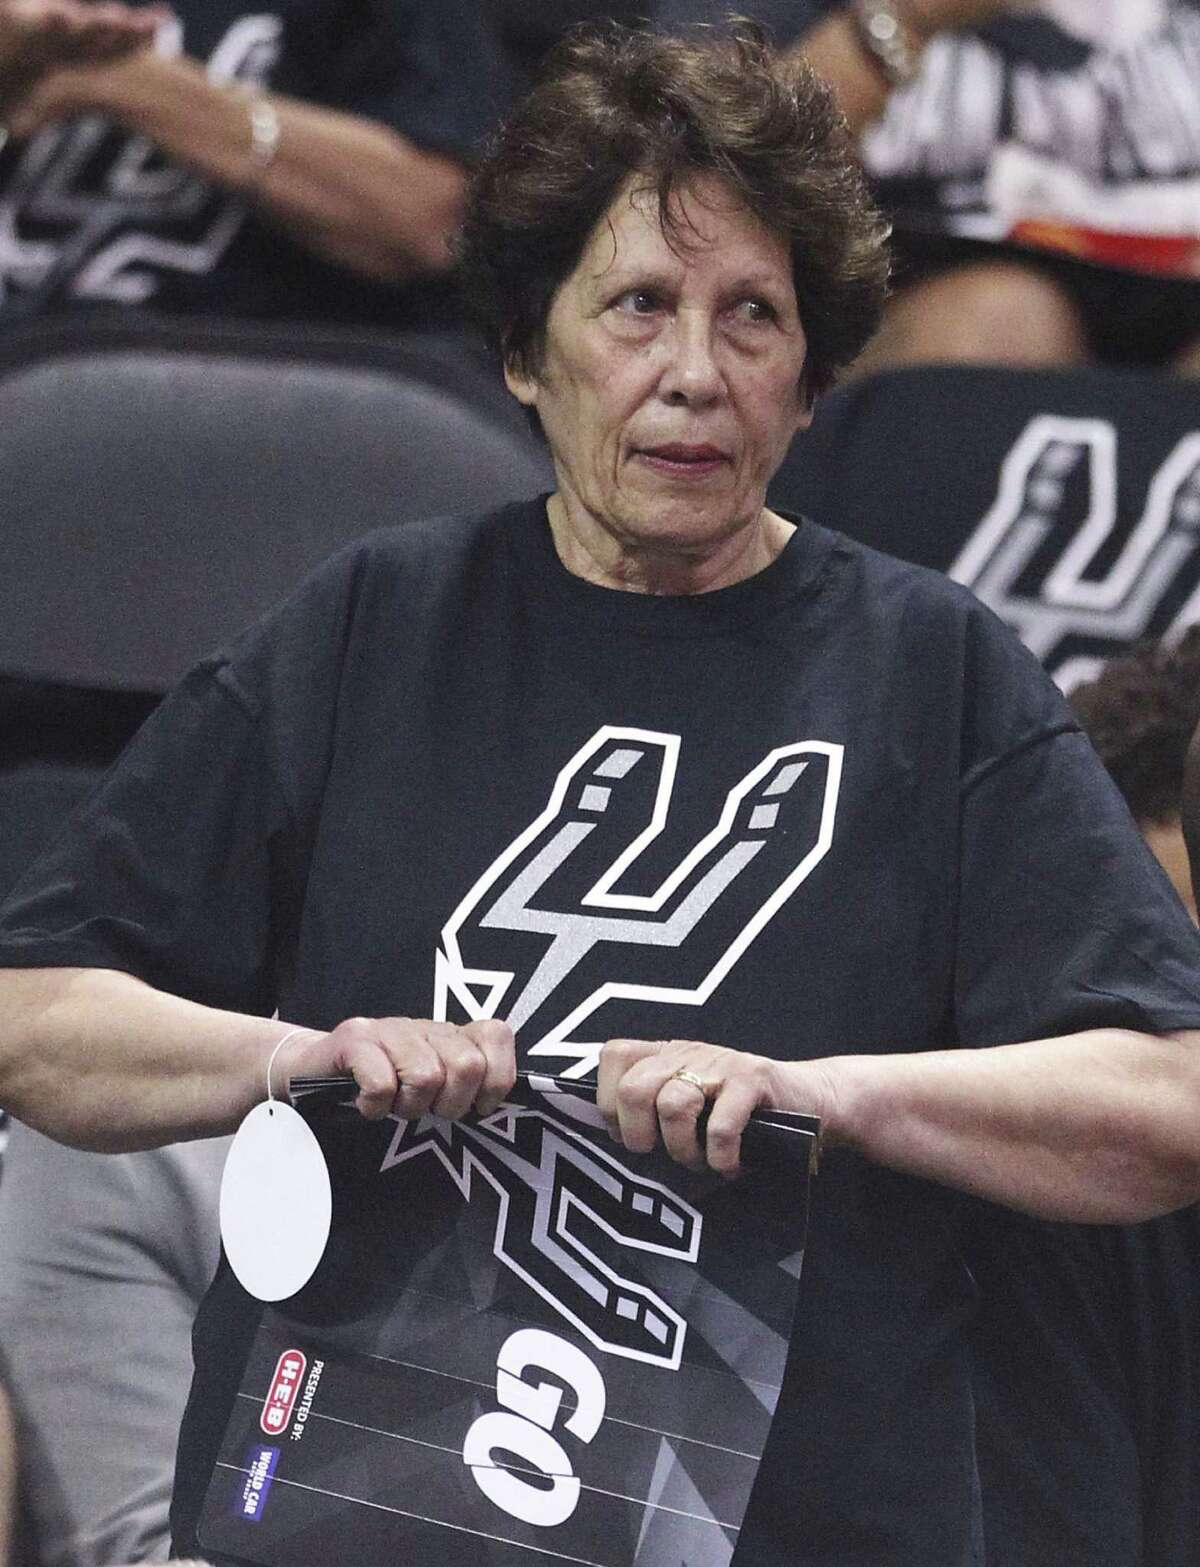 Yvonne Mills, the mother of Spur Patty Mills, watches from the stands during Game 1 of the NBA Finals.